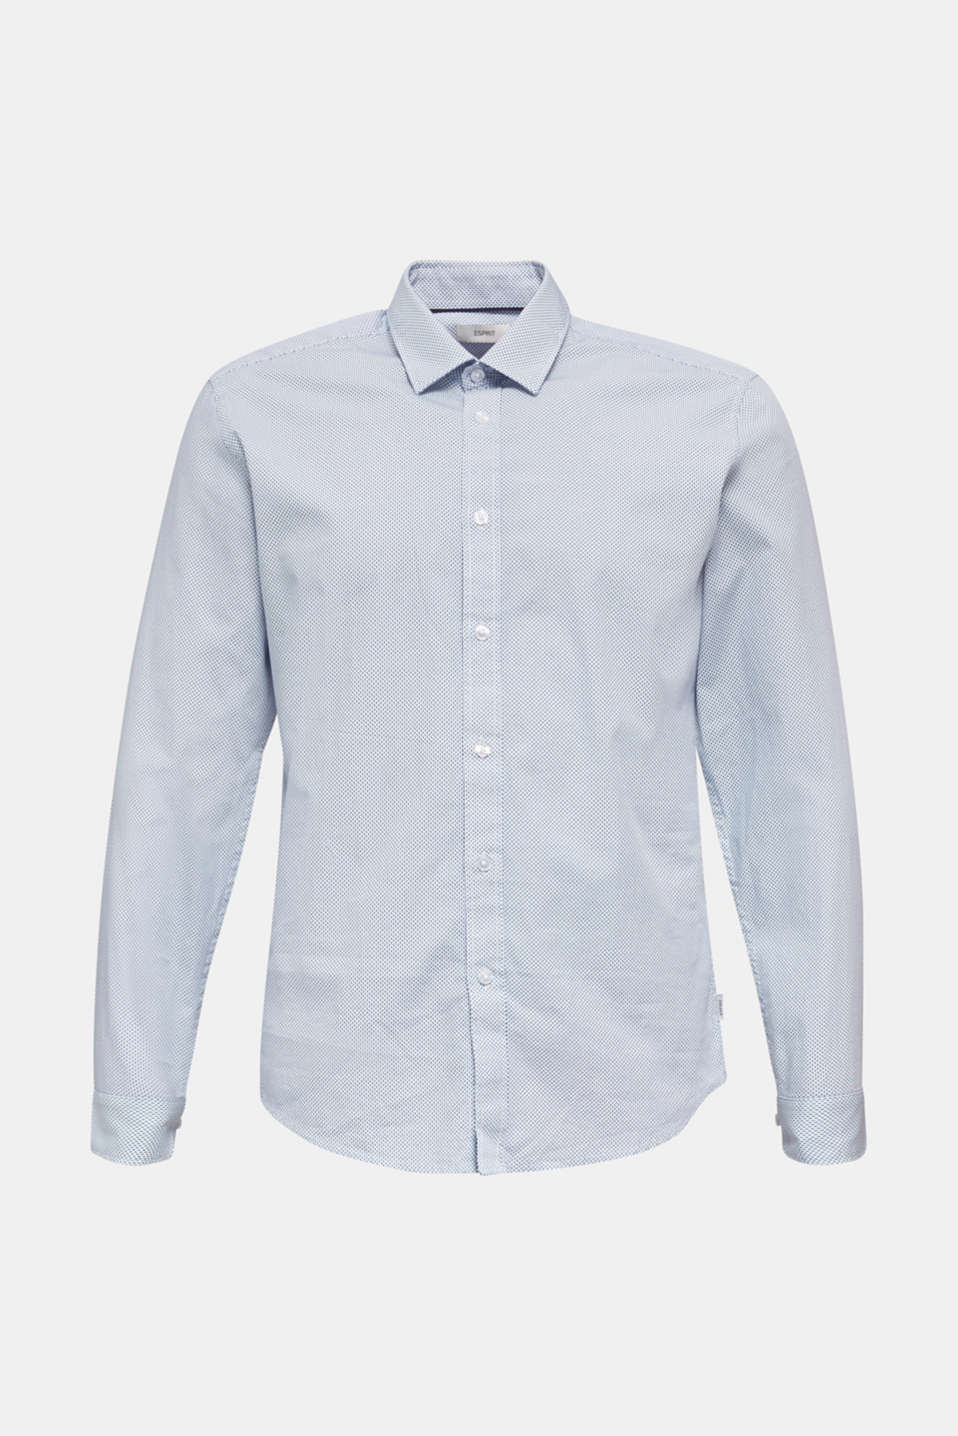 Textured shirt made of 100% cotton, PASTEL BLUE 4, detail image number 5